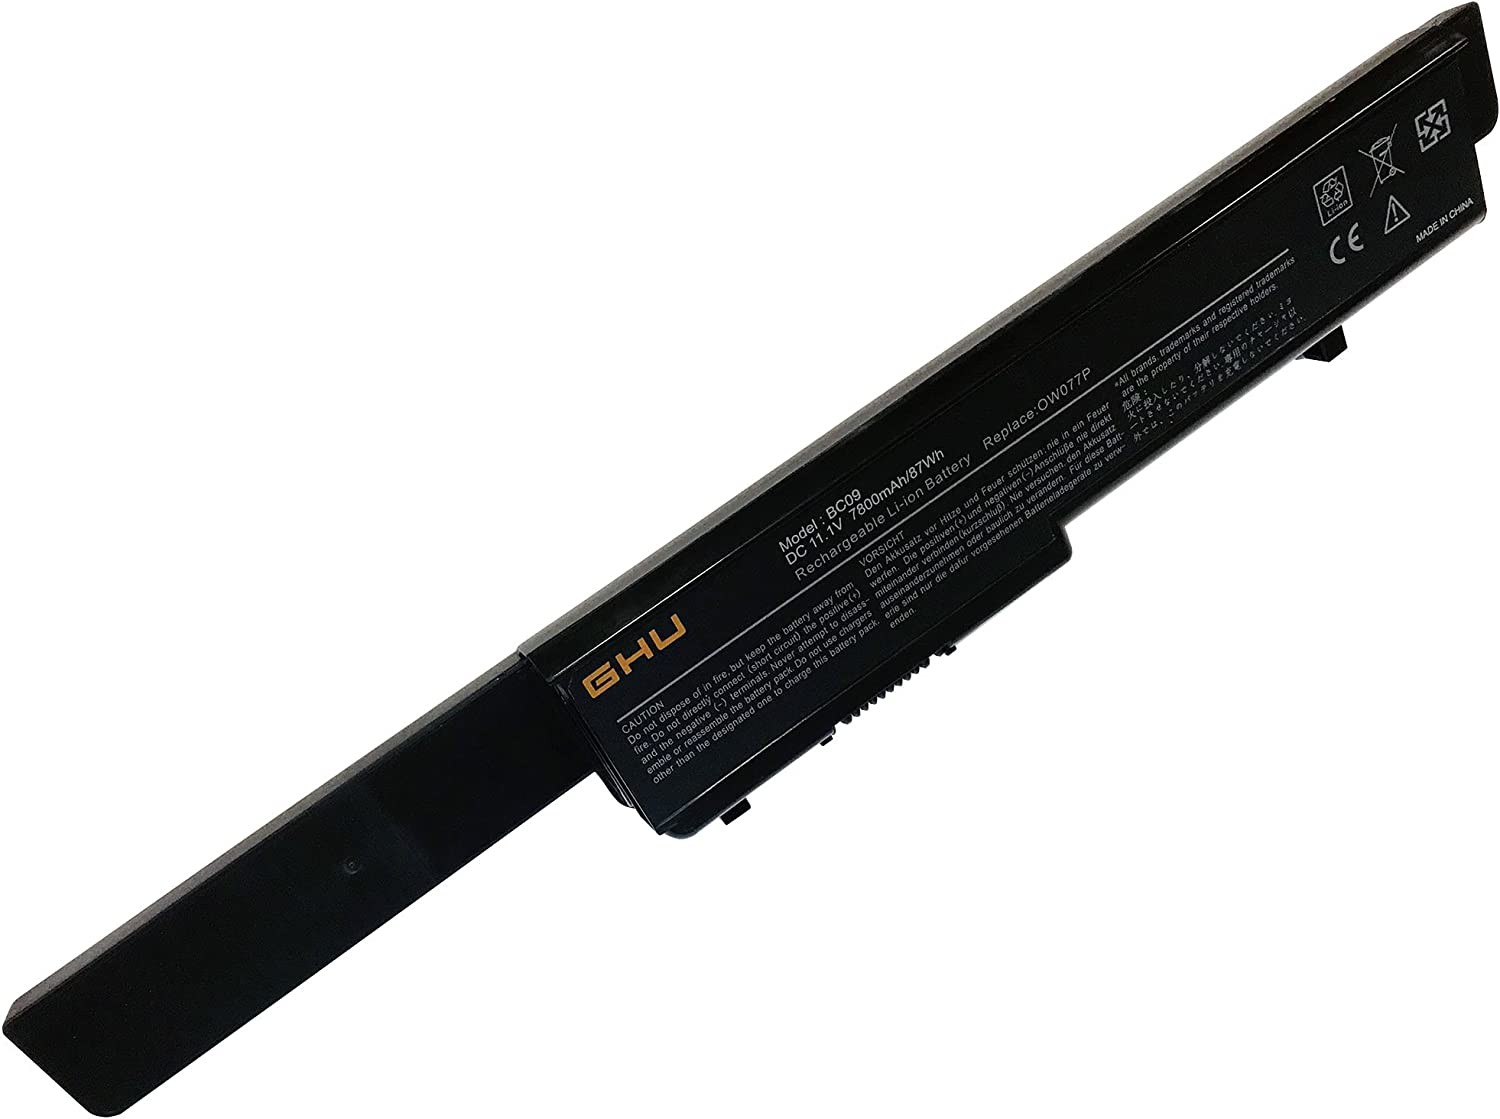 New GHU 9 Cell 87 WHR U164P N855P Battery for Dell Studio 17 1745 1747 1749 Laptop Fit N856P M905P Part # U150P 312-0196 312-0186 U150P OW077P M909P W080P Y067P